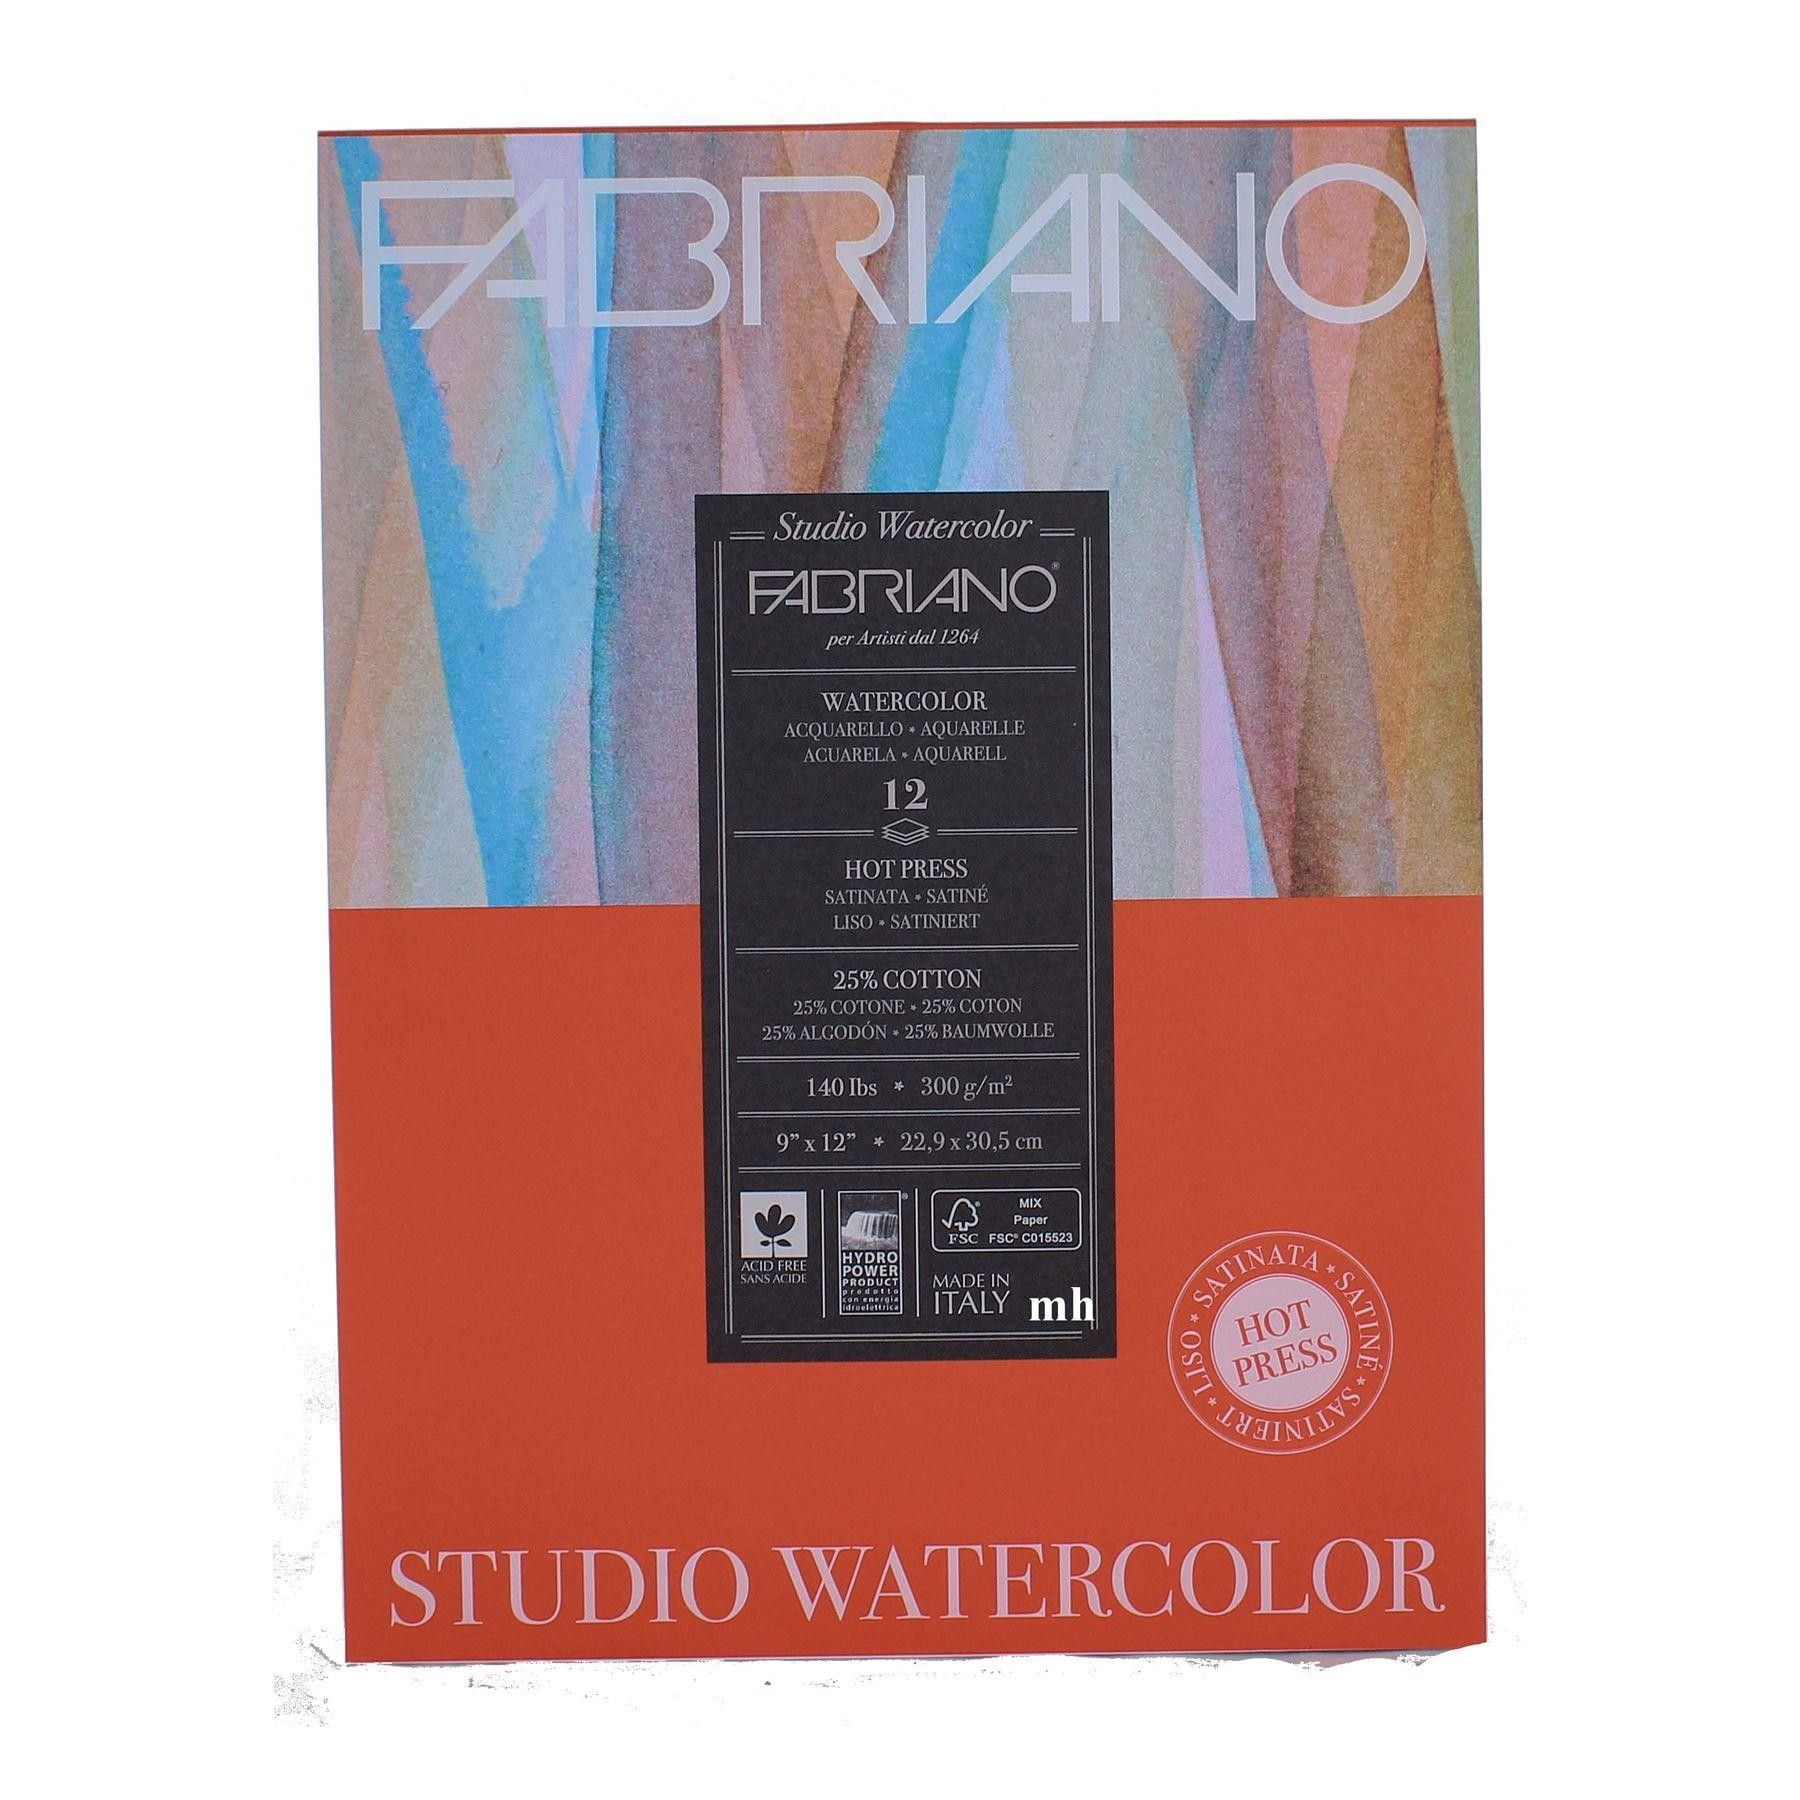 Fabriano Studio Watercolour Pad Watercolor Paper Comic Book